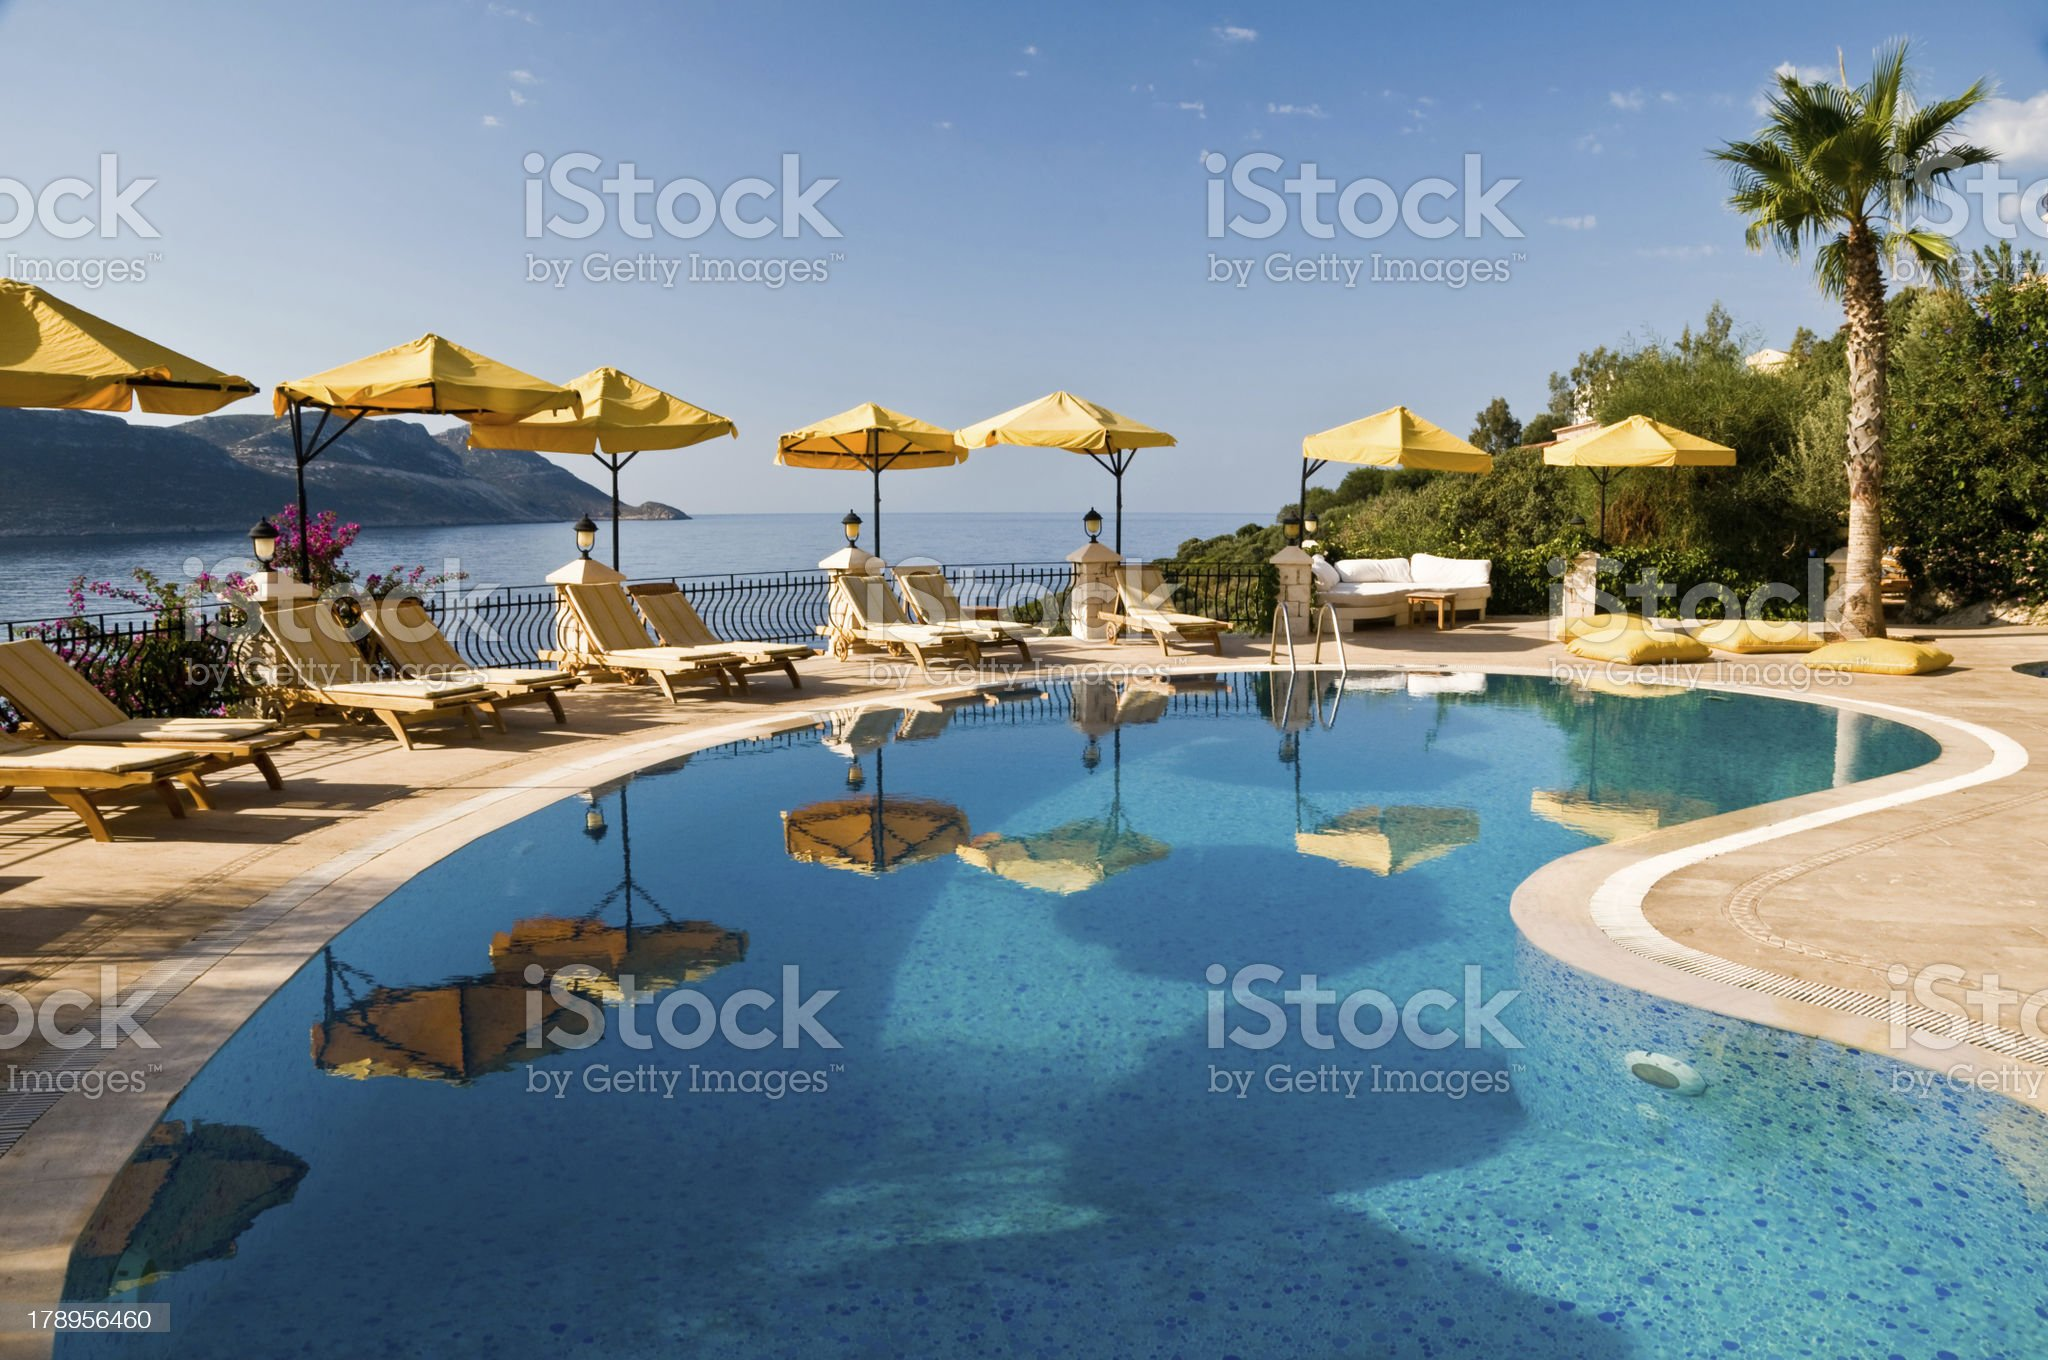 Poolside at a Mediterranean resort royalty-free stock photo